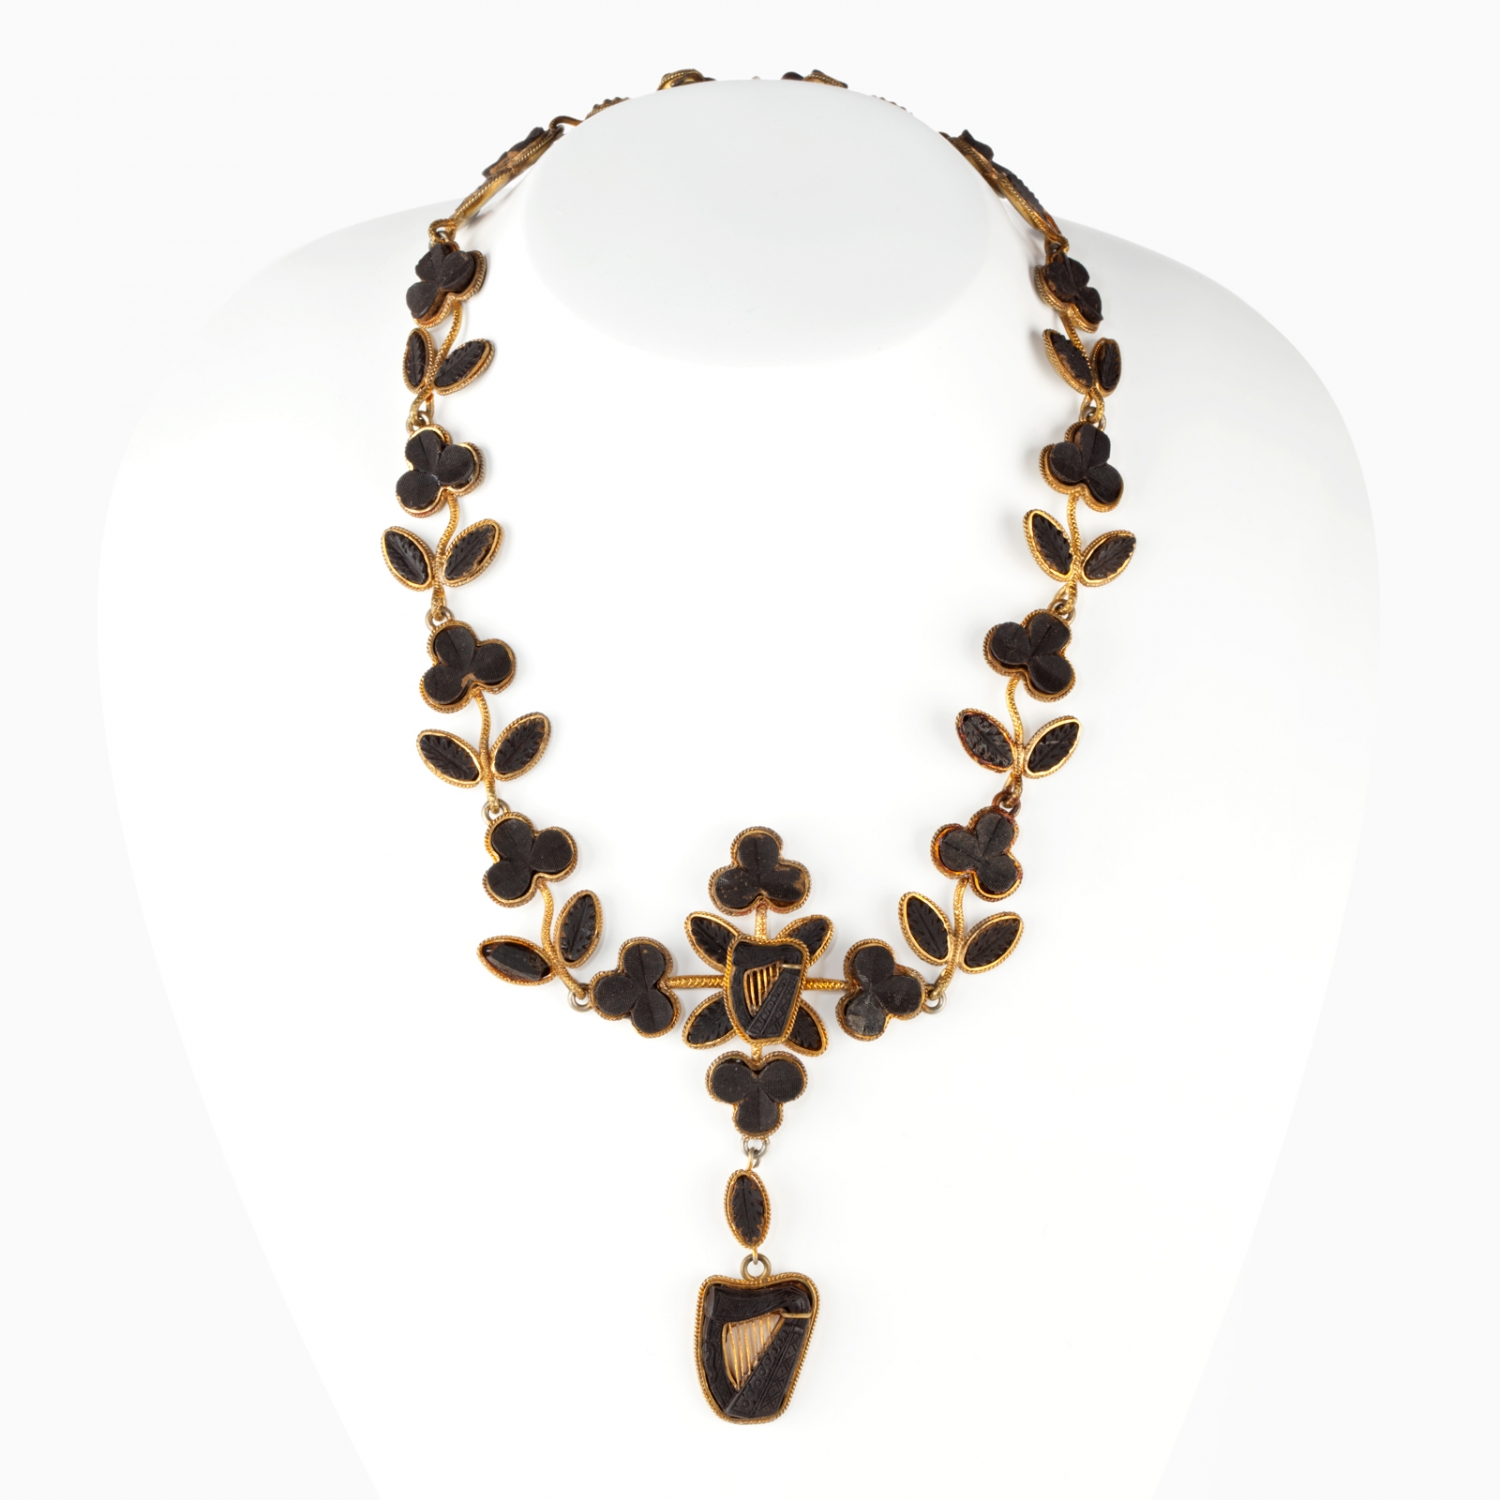 A gold and bog oak  necklace. Made in Ireland, late 1860s.